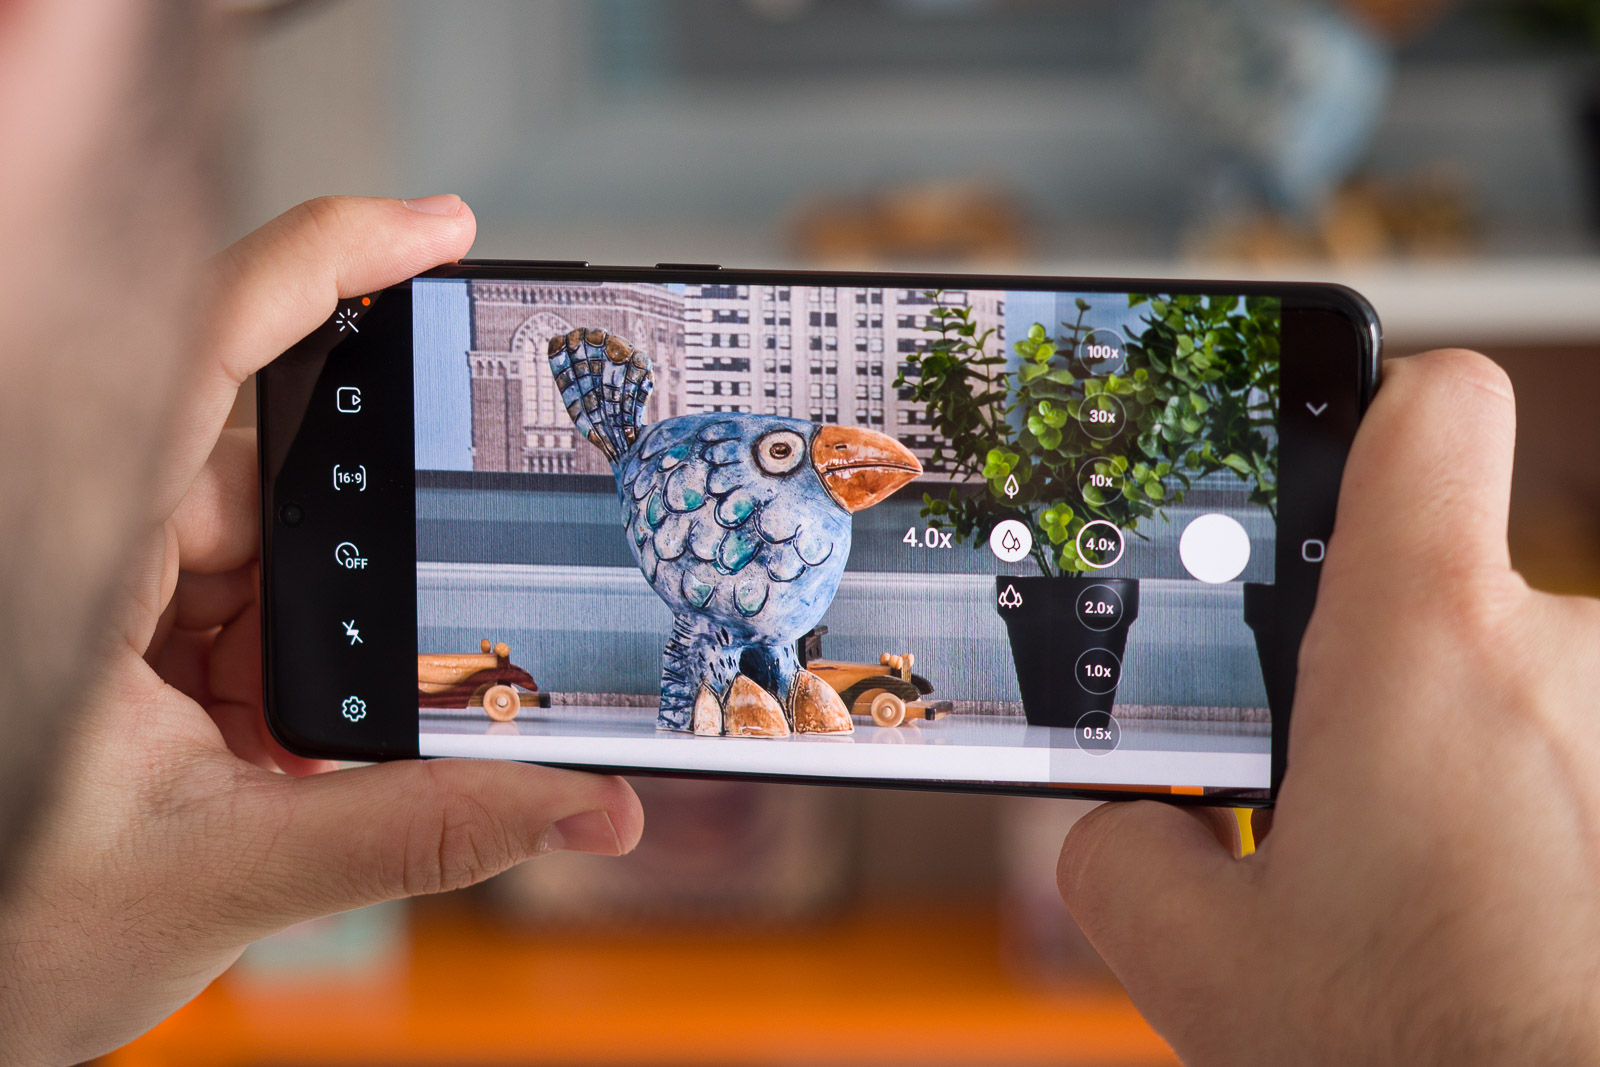 Video resolutions and camera modes which ones do you prefer